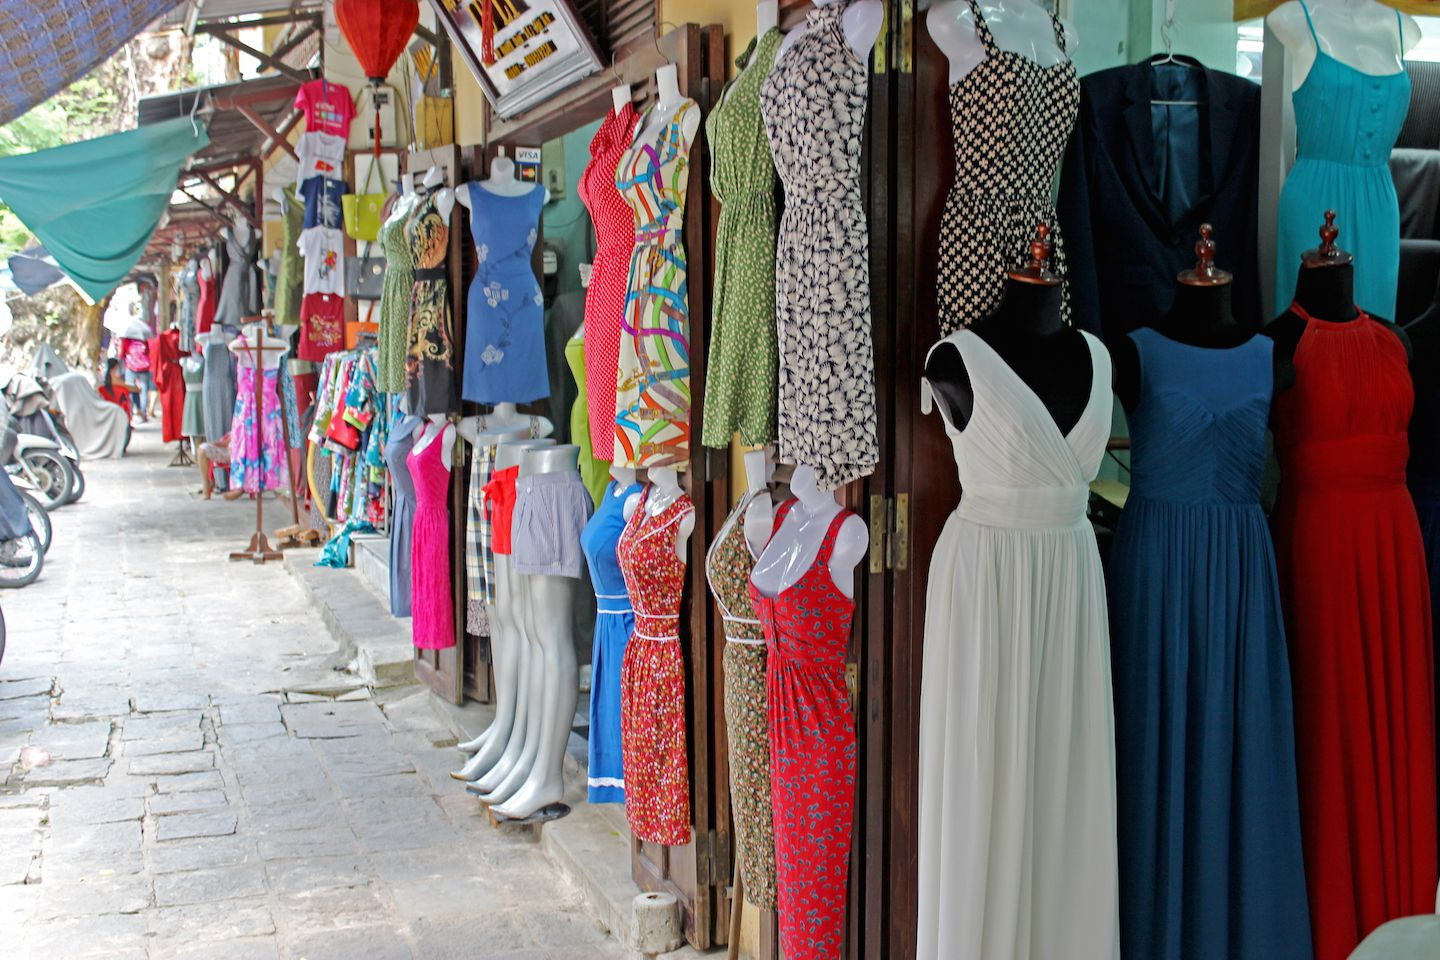 tailor made clothes hoi an - 10+ Unique & Amazing Things To Do In Hoi An, Vietnam (2021)